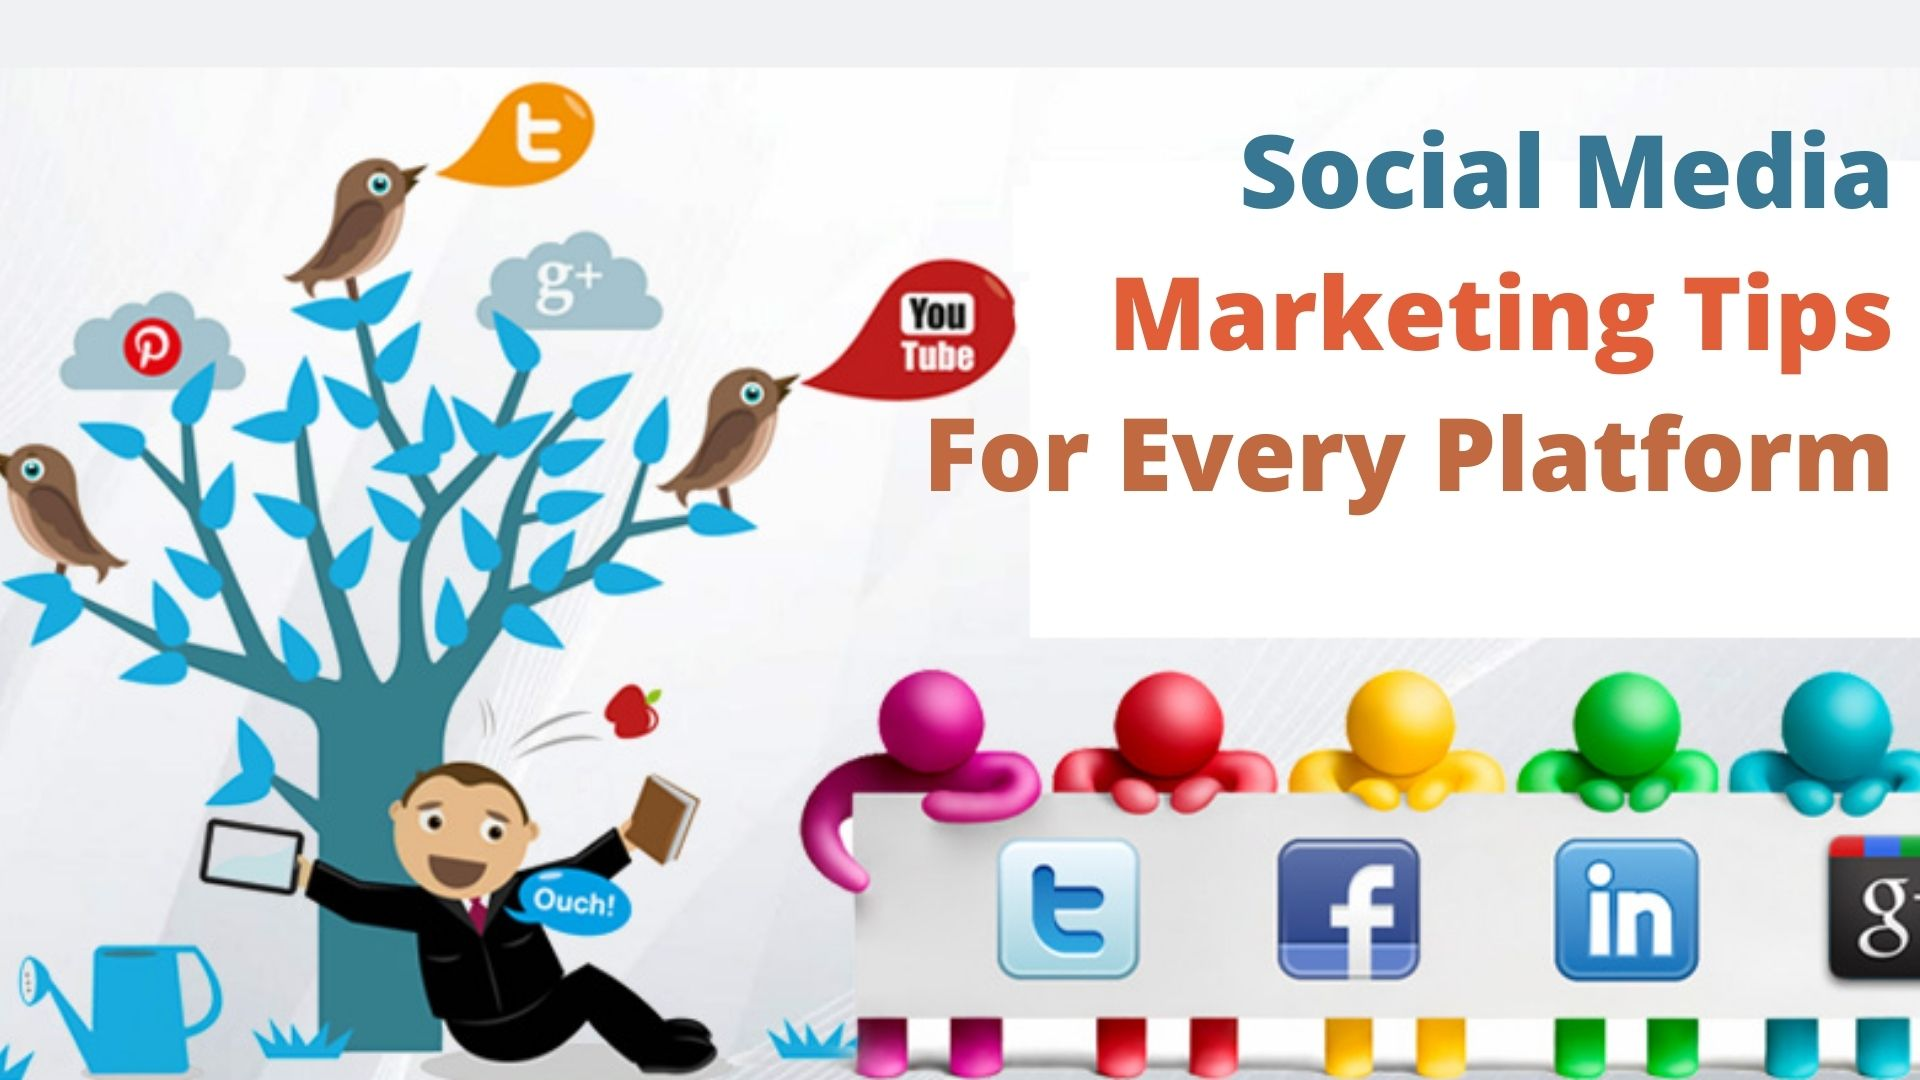 Social Media Marketing Tips For Every Platform